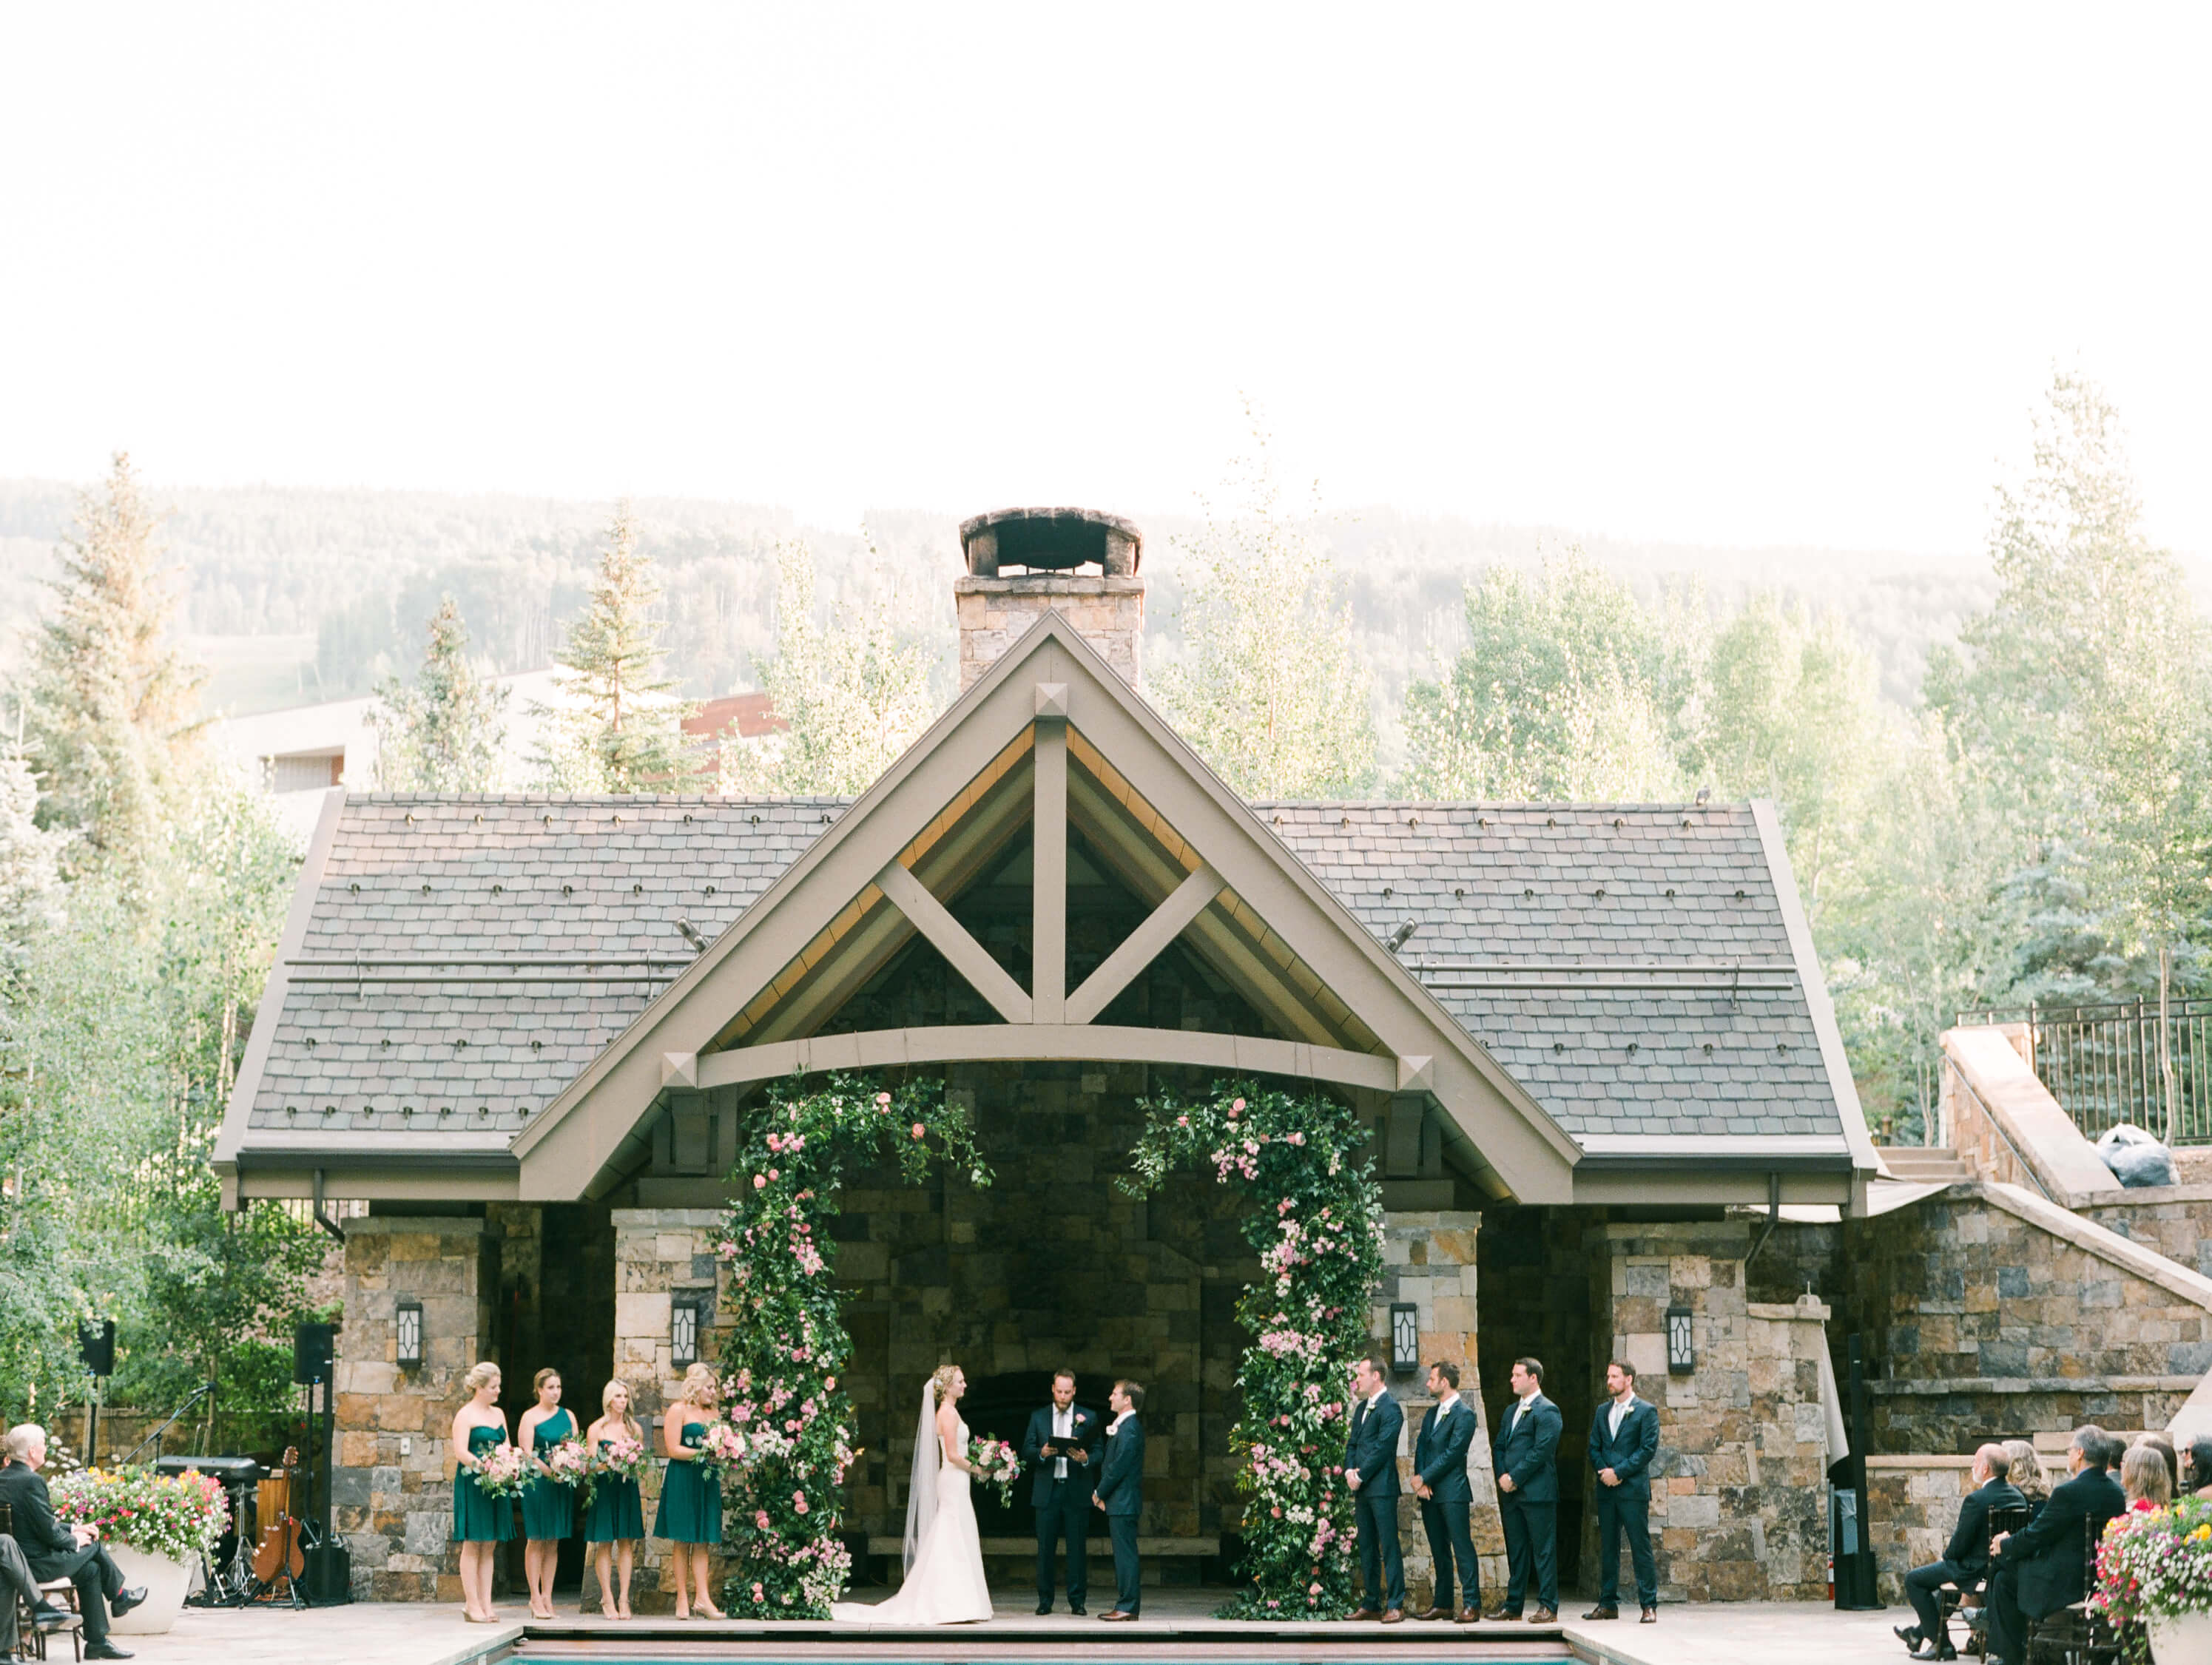 The Town Of Vail Is So Quaint And Lovely Especially During Summer Months This Wedding Could Not Be More Gorgeous